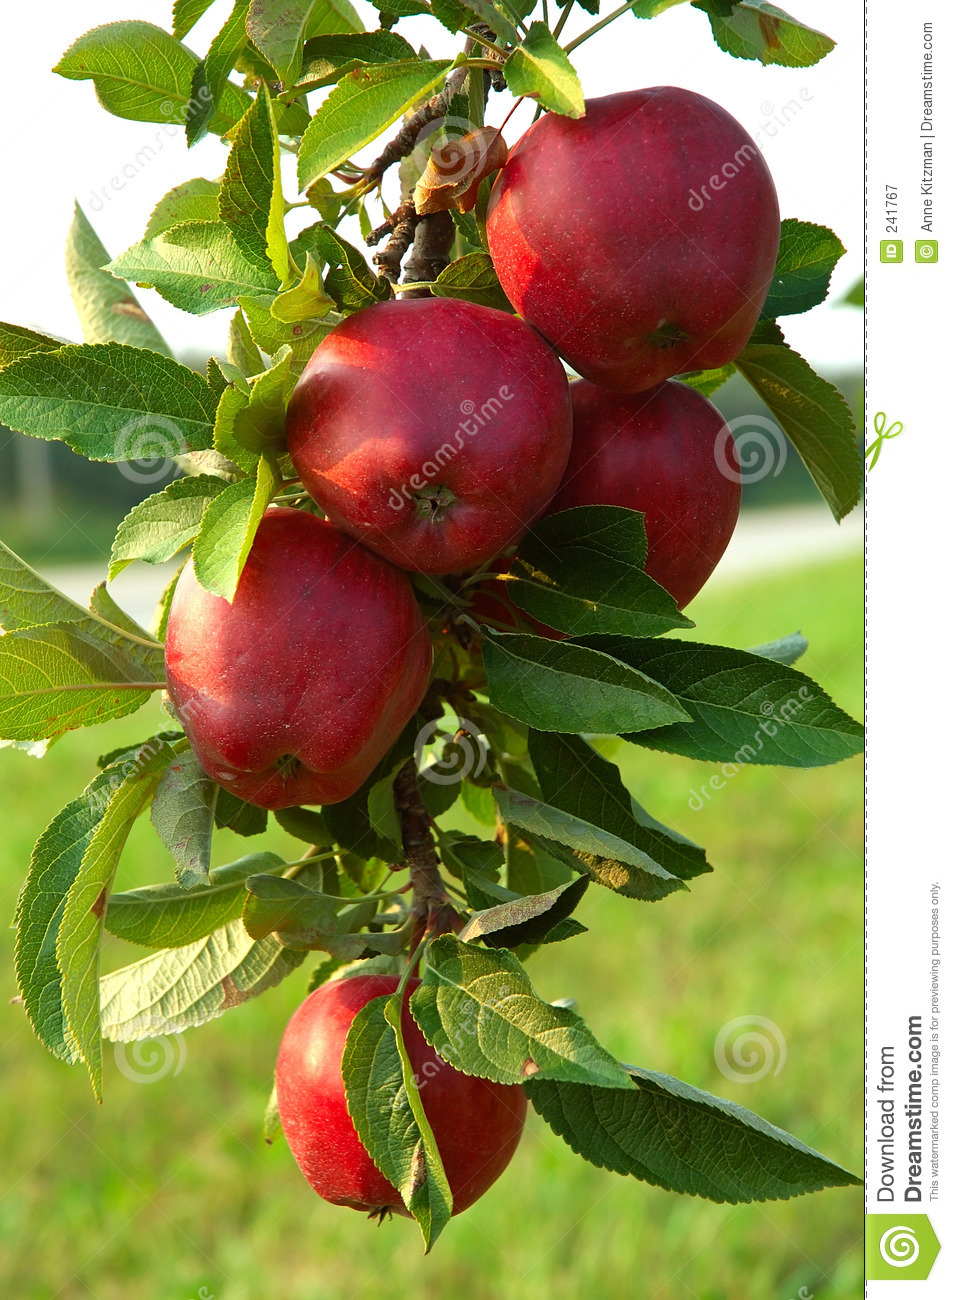 Apple Tree Royalty Free Stock Photography - Image: 241767